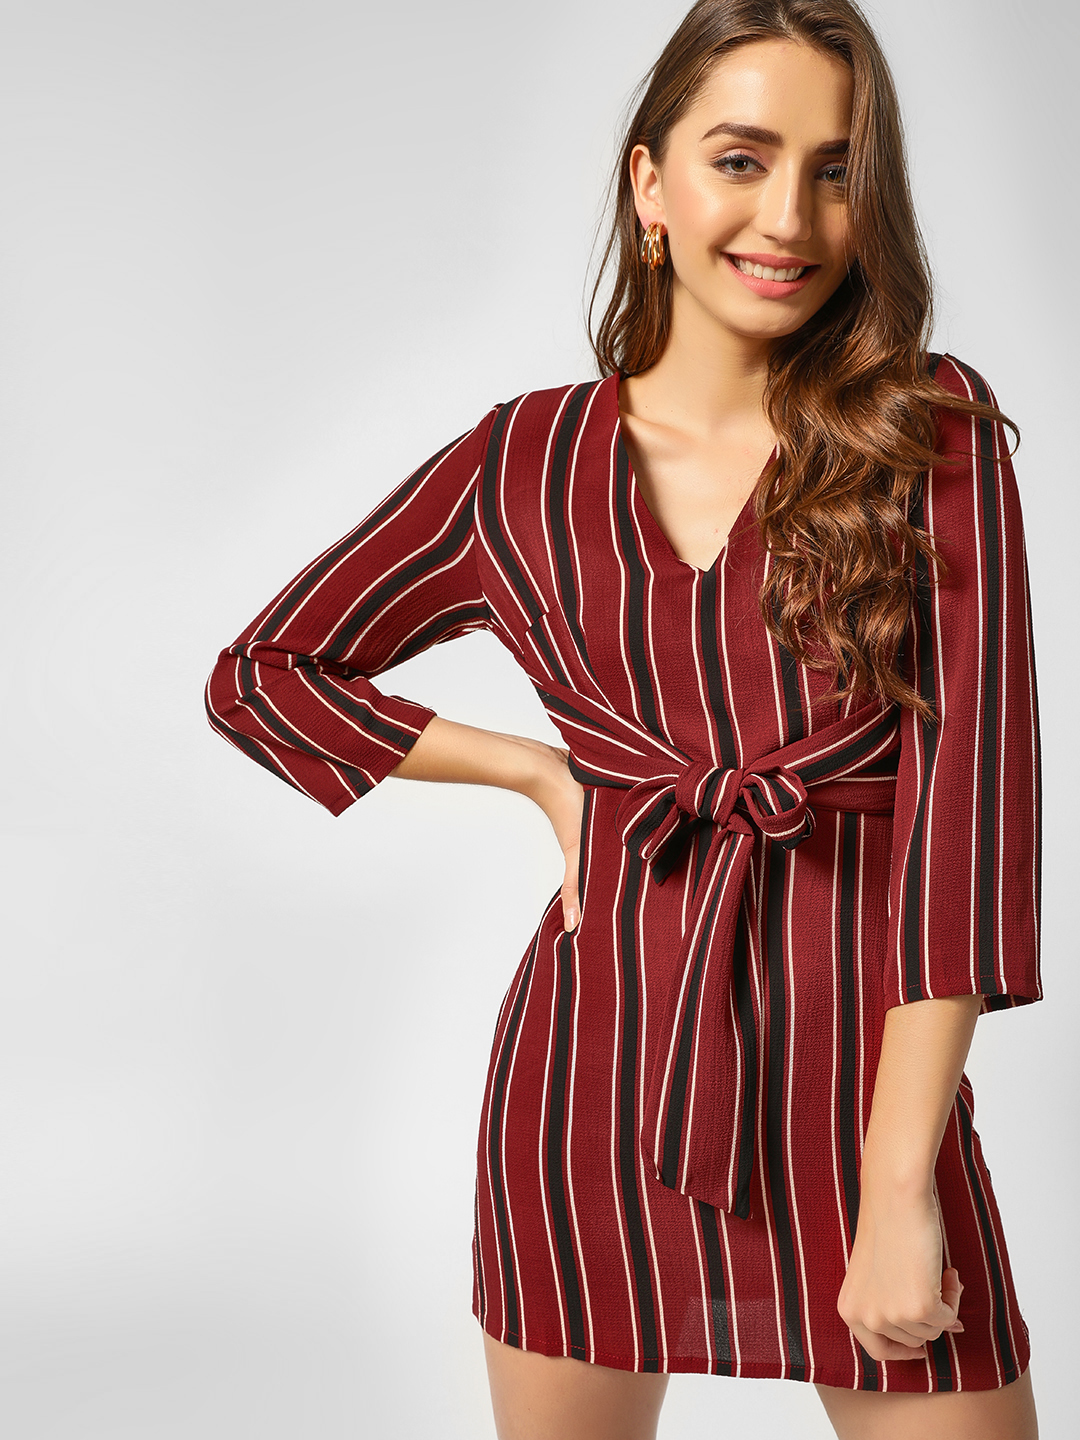 Lola May Wine Striped Front Knot Shift Dress 1